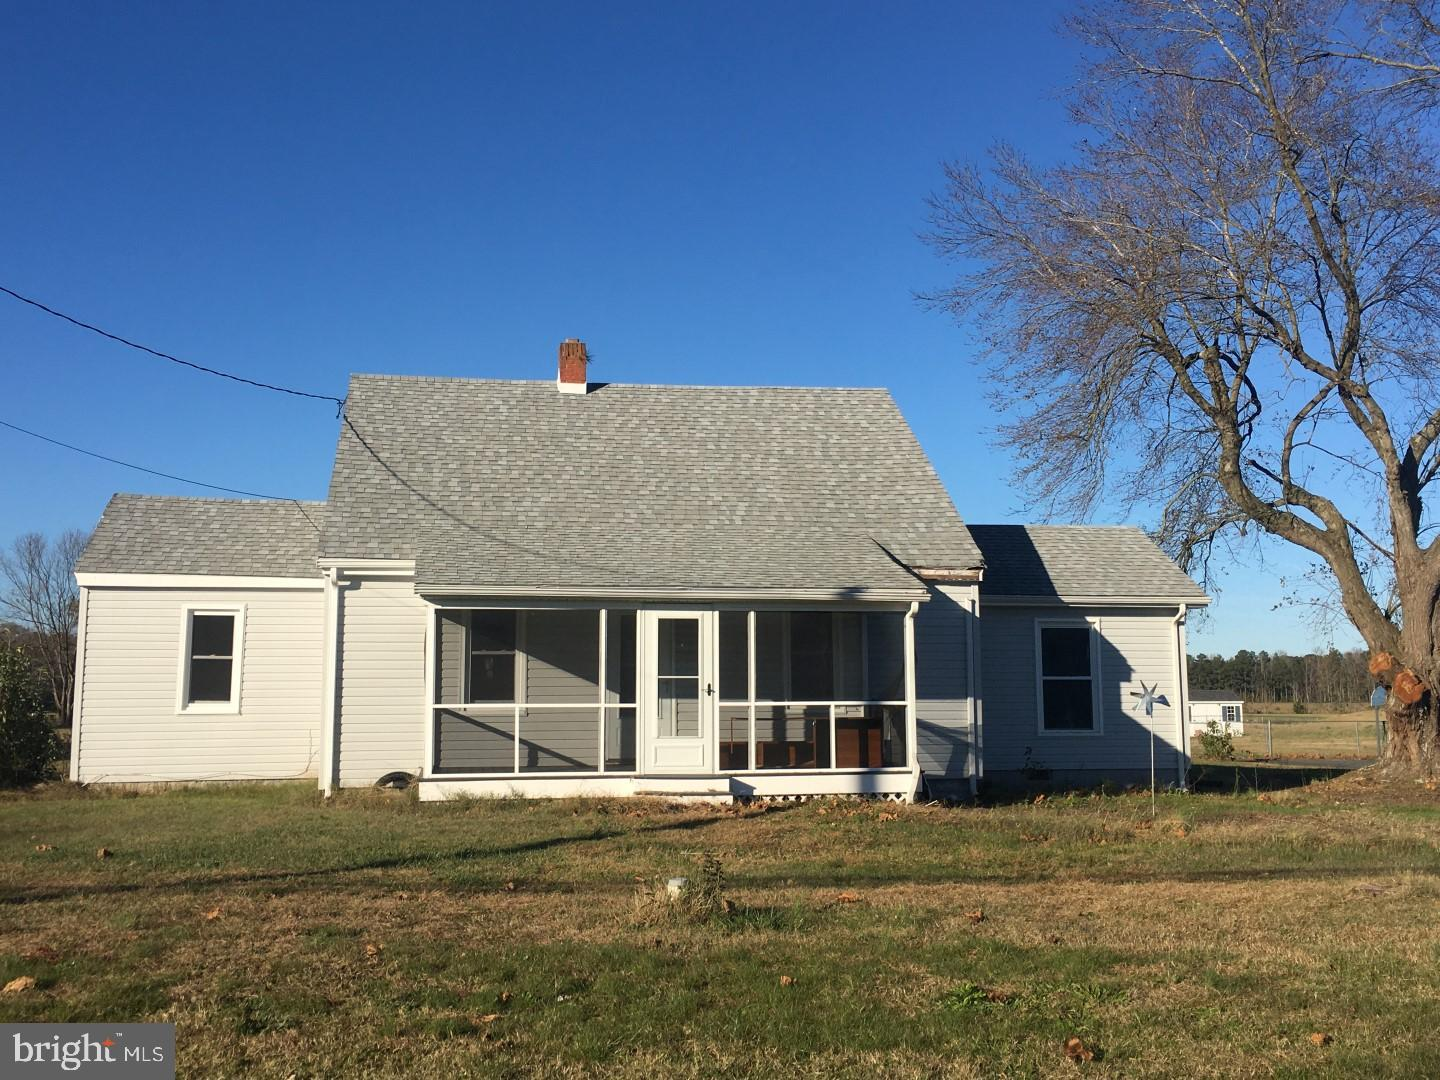 Country Ranch House w/Detached Garage and 3 BR/2BA on almost 2 acres - NEWER (2-5yrs) ROOF/VINYL SID